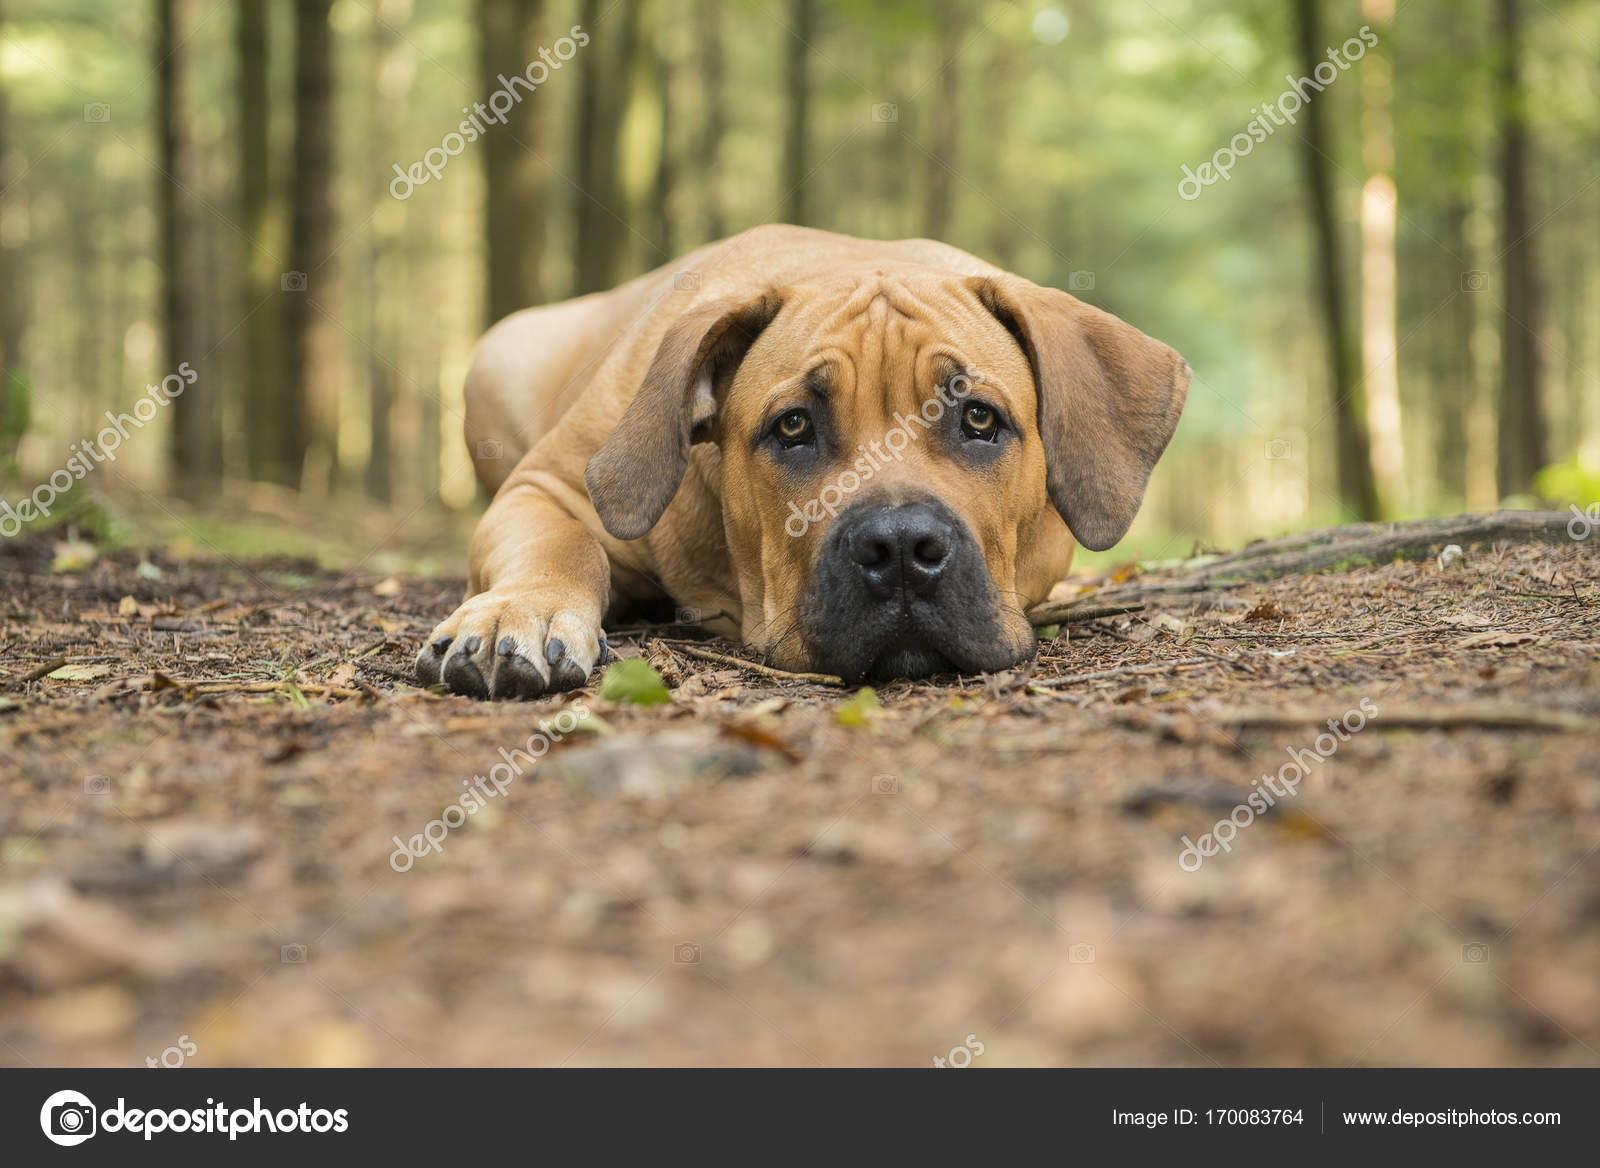 Young south african mastiff dog lying down in a forest lane